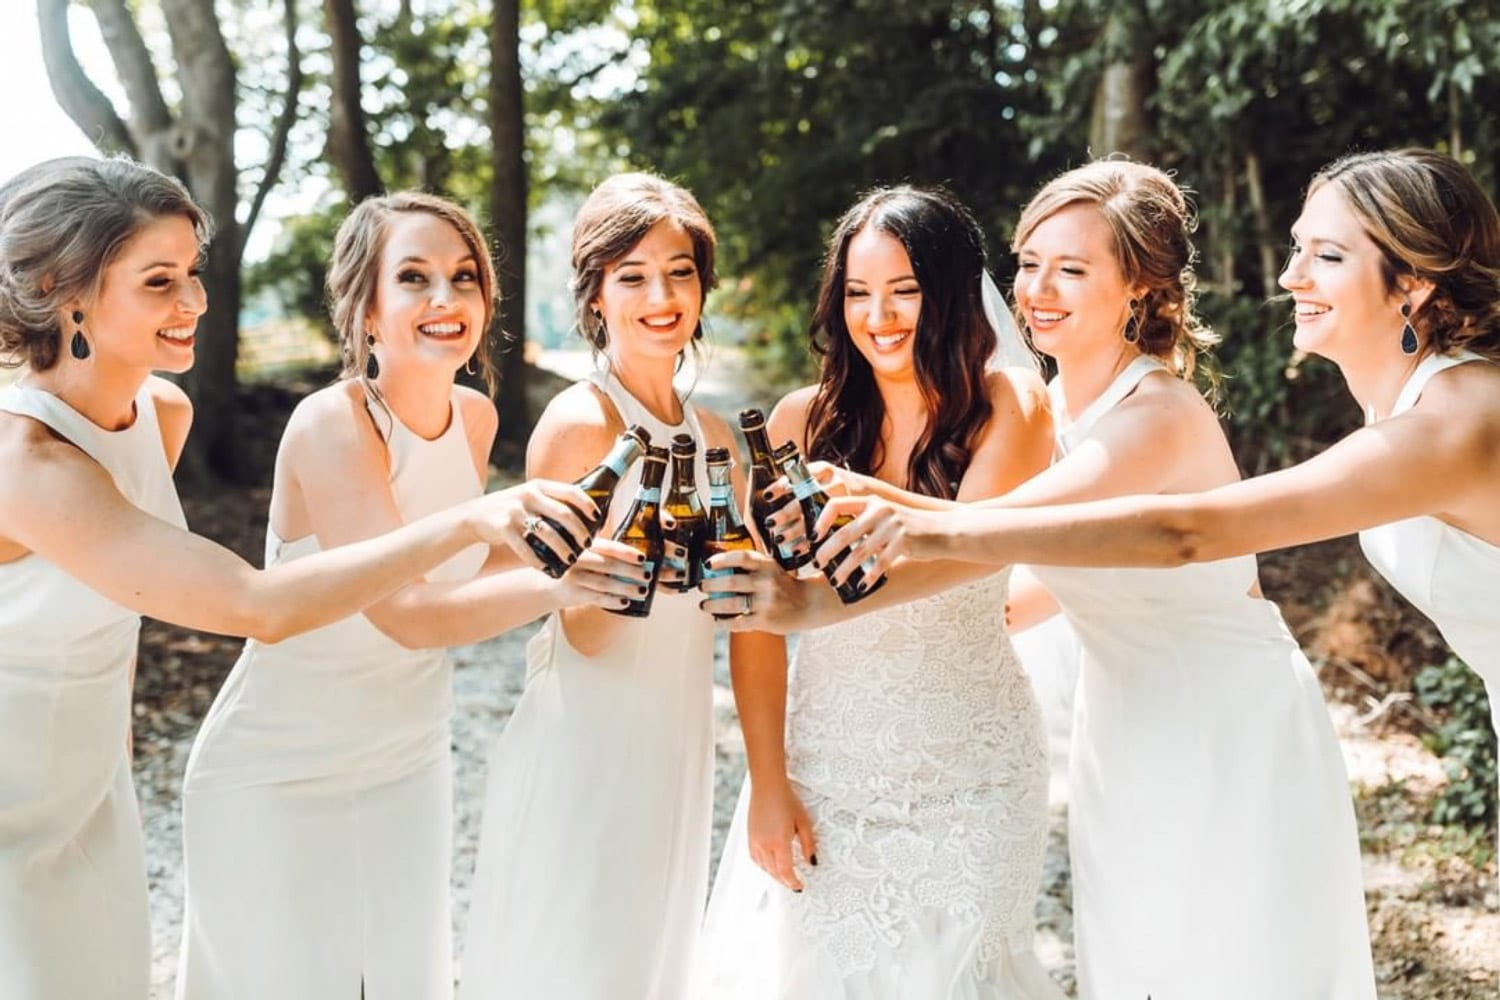 Bride and bridesmaids toast outside